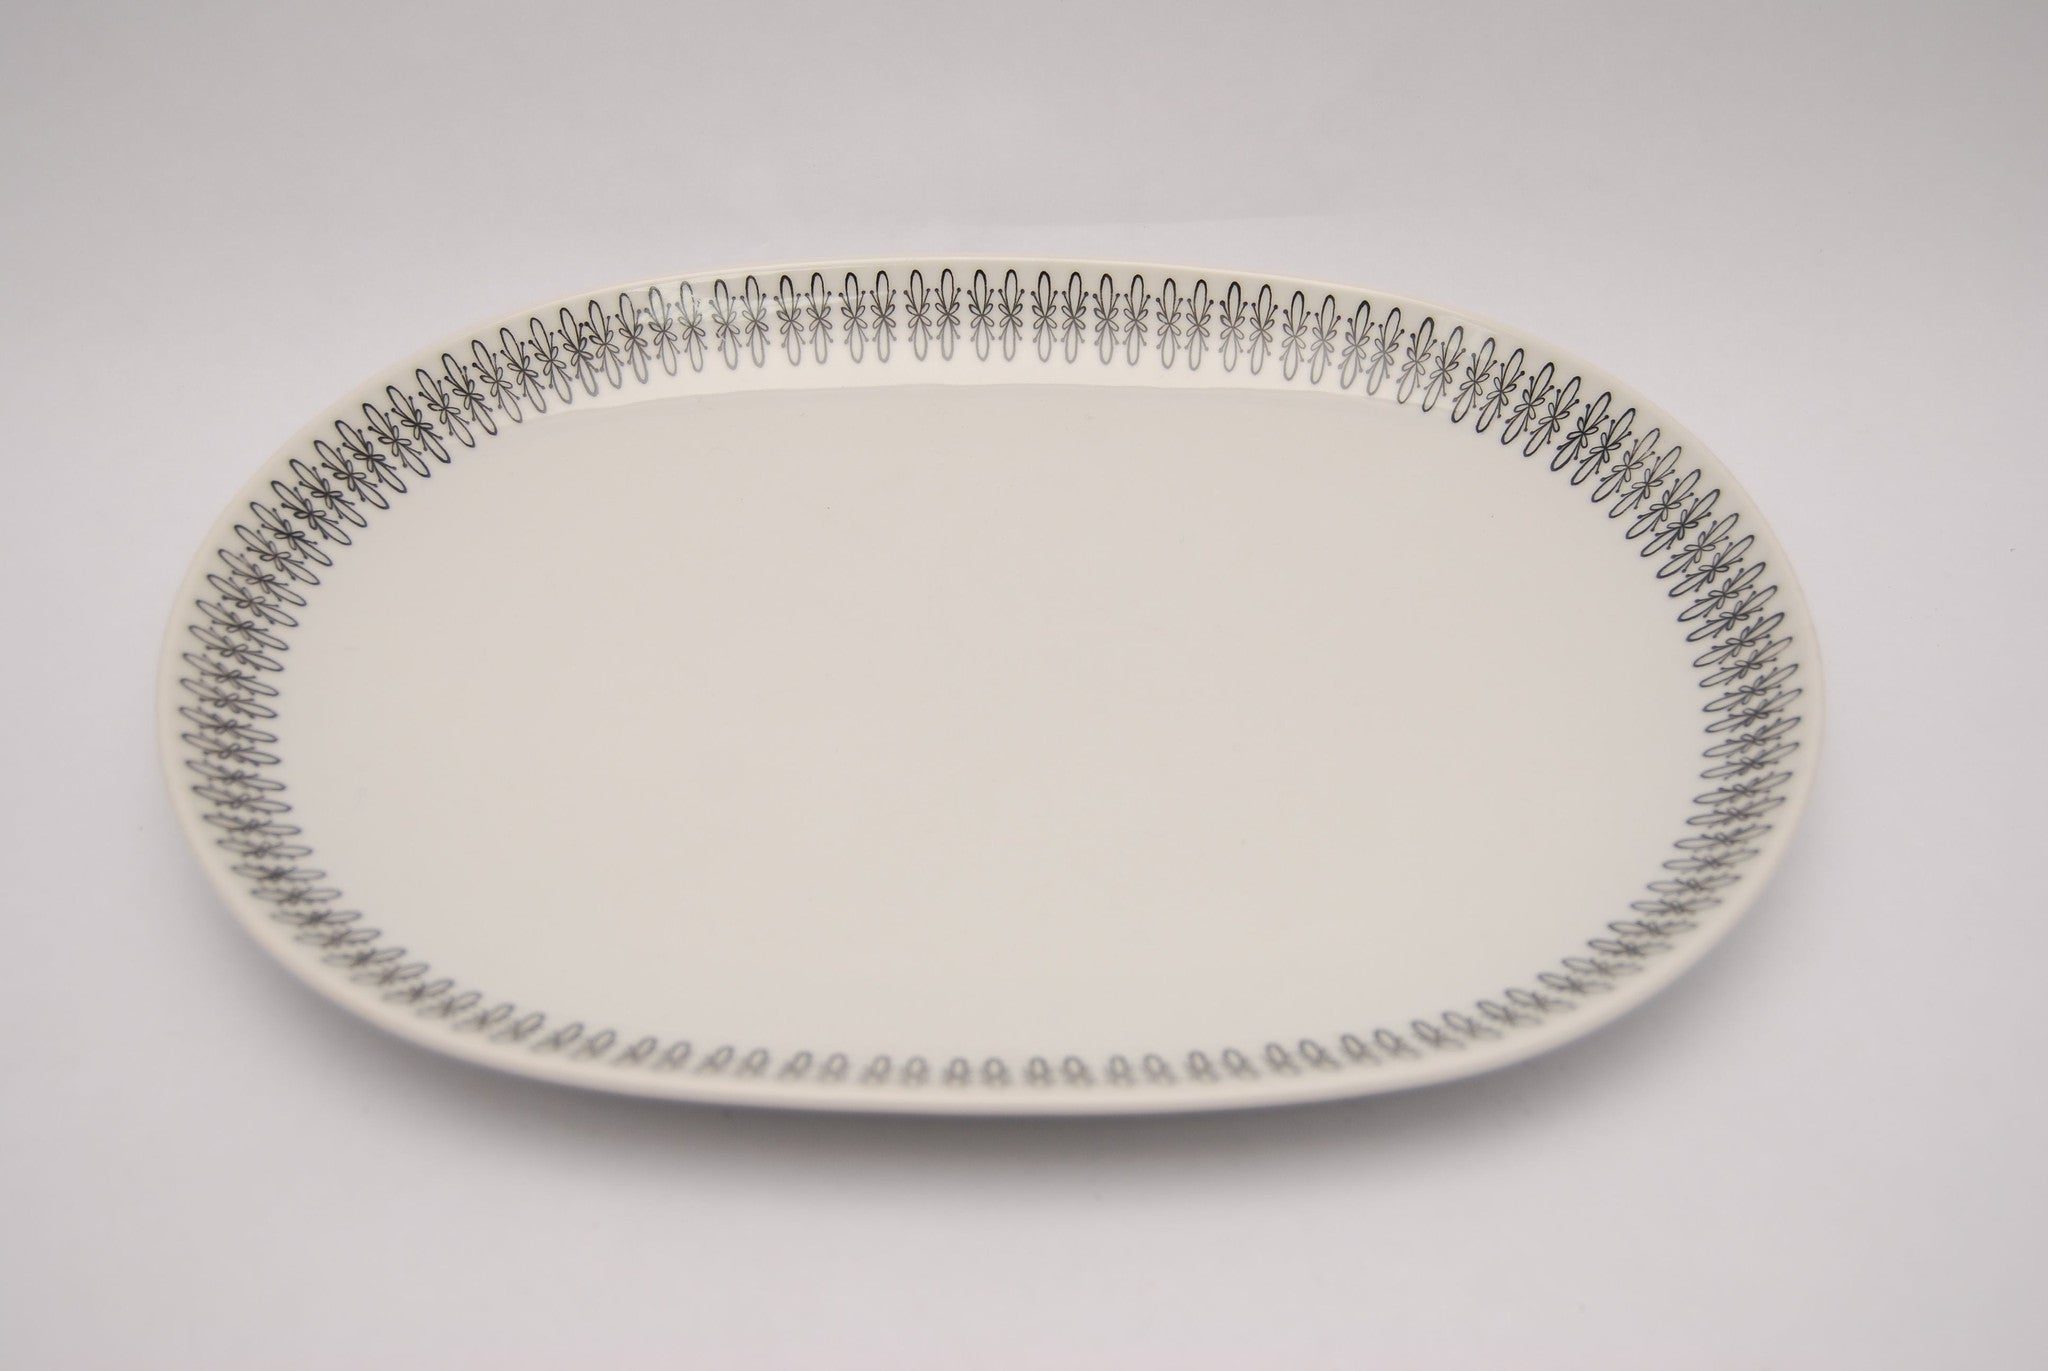 Serving plate by Karlskrona